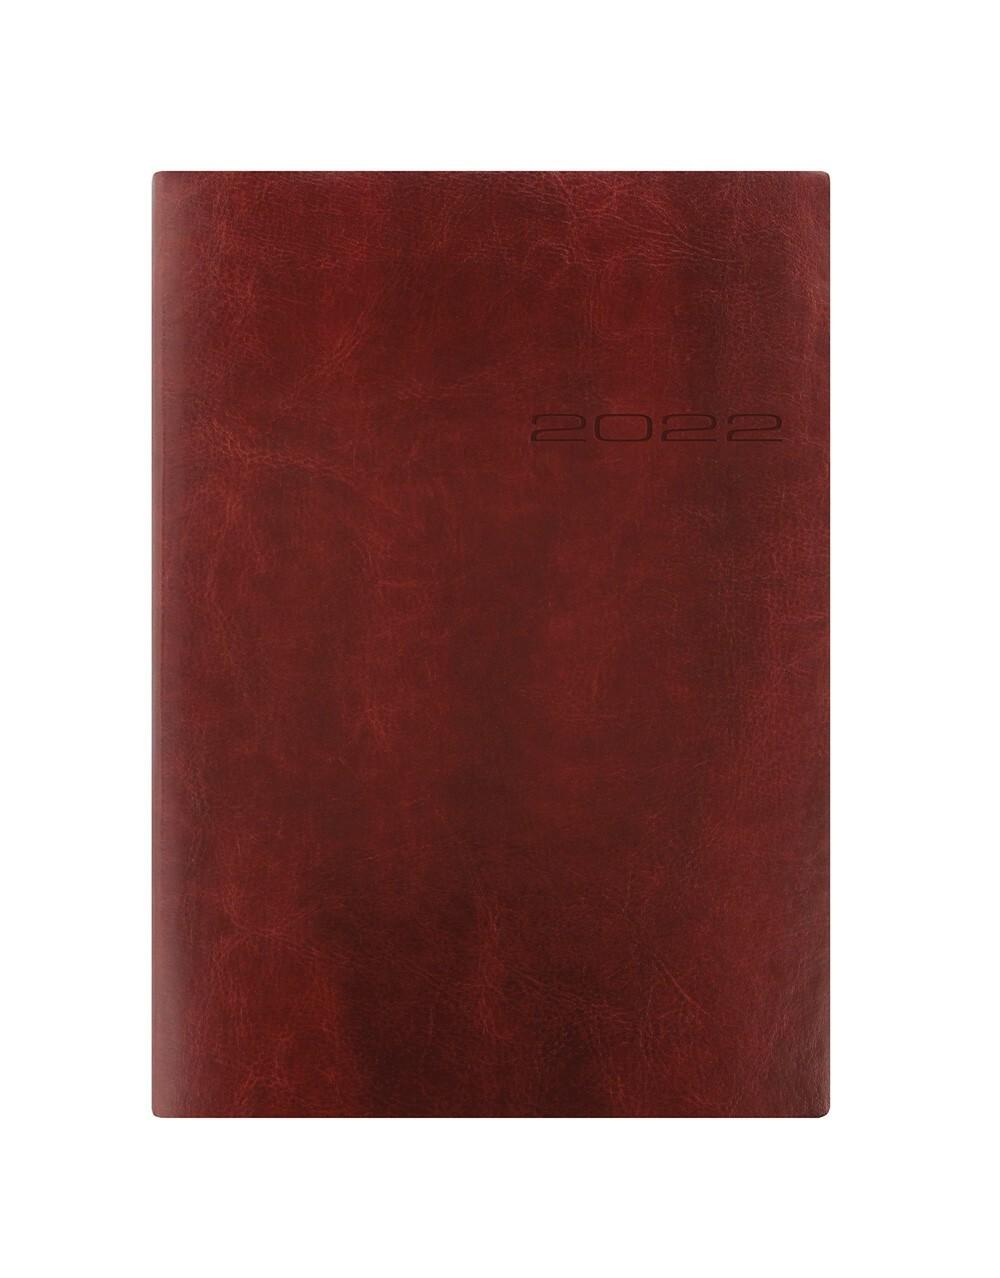 Letts Lecassa A5 Week to View Brown 2022 Diary